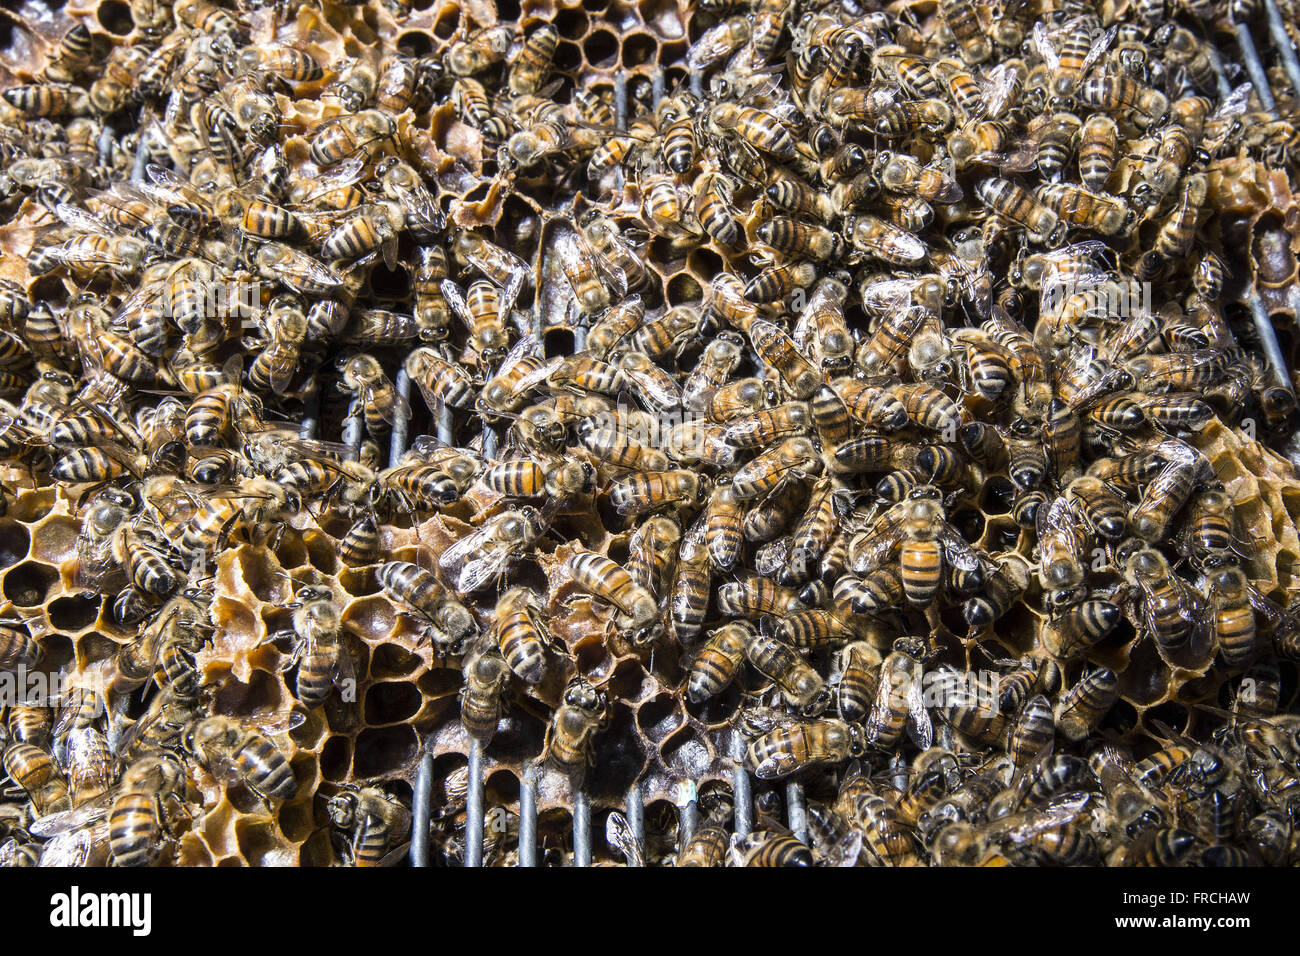 Apiary - bees detail in the supers or bee box - Stock Image